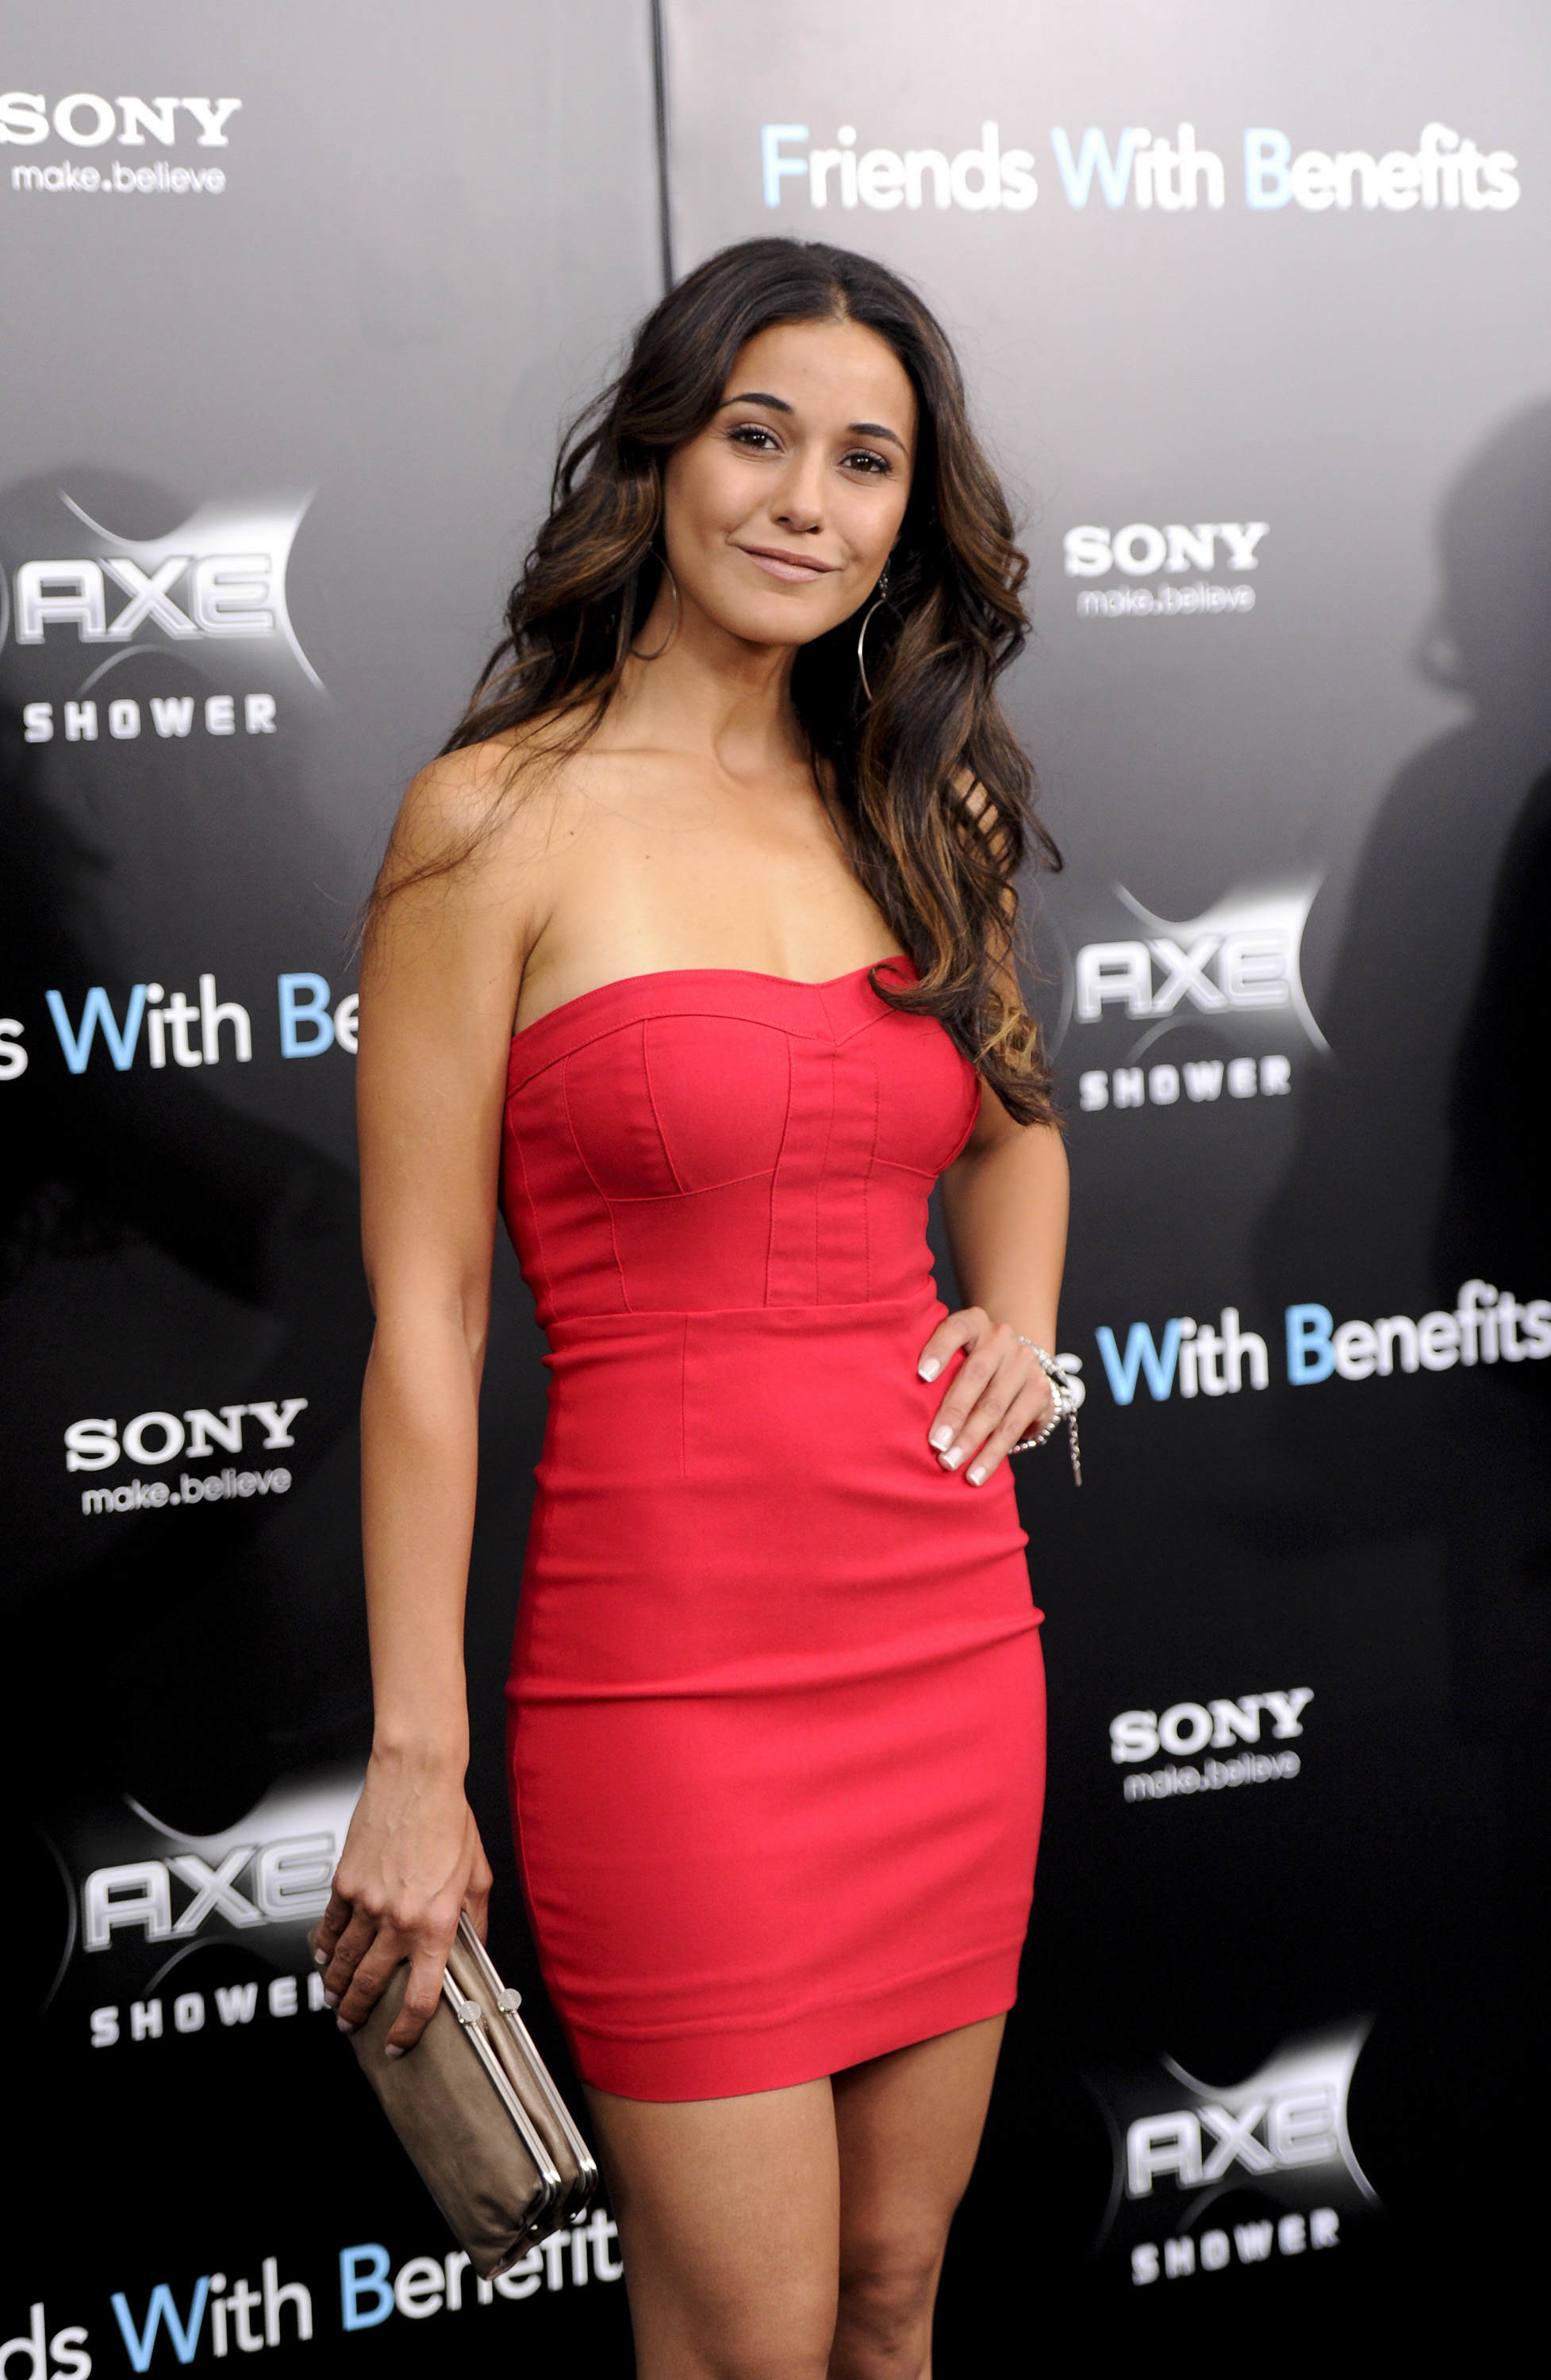 emmanuelle-chriqui-wear-hot-red-dress-at-friends-with ... Lindsay Lohan Net Worth